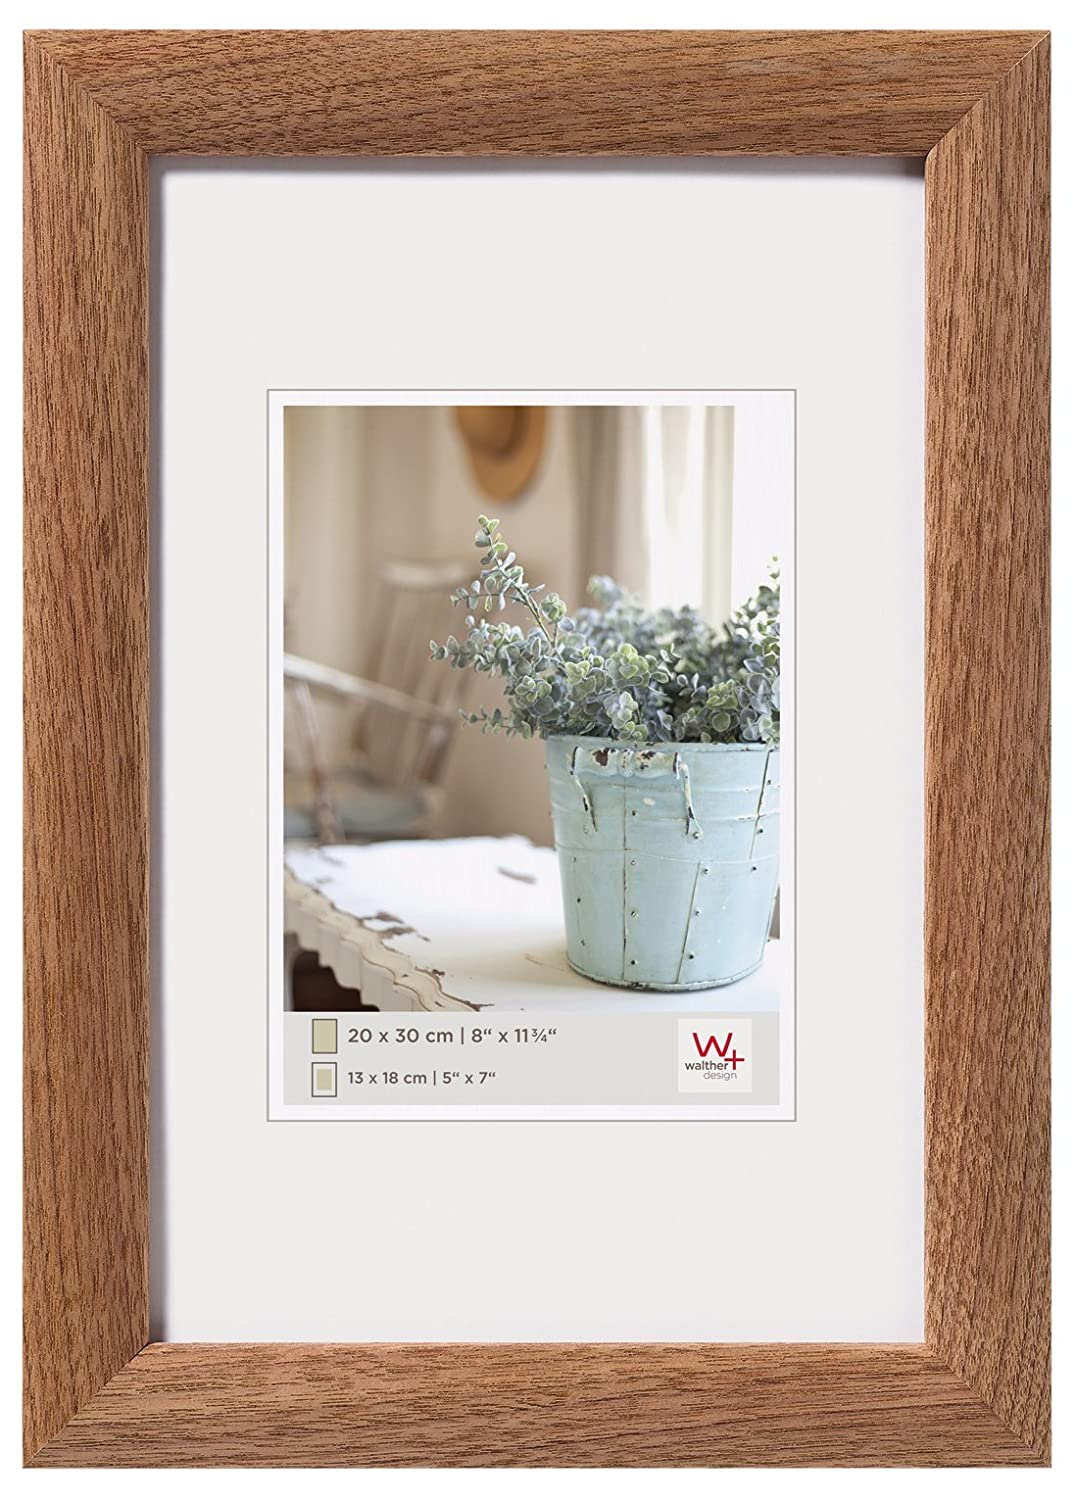 walther design Interieur Picture Frame, Wood, Walnut, 40 x 50 x 1.5 ...